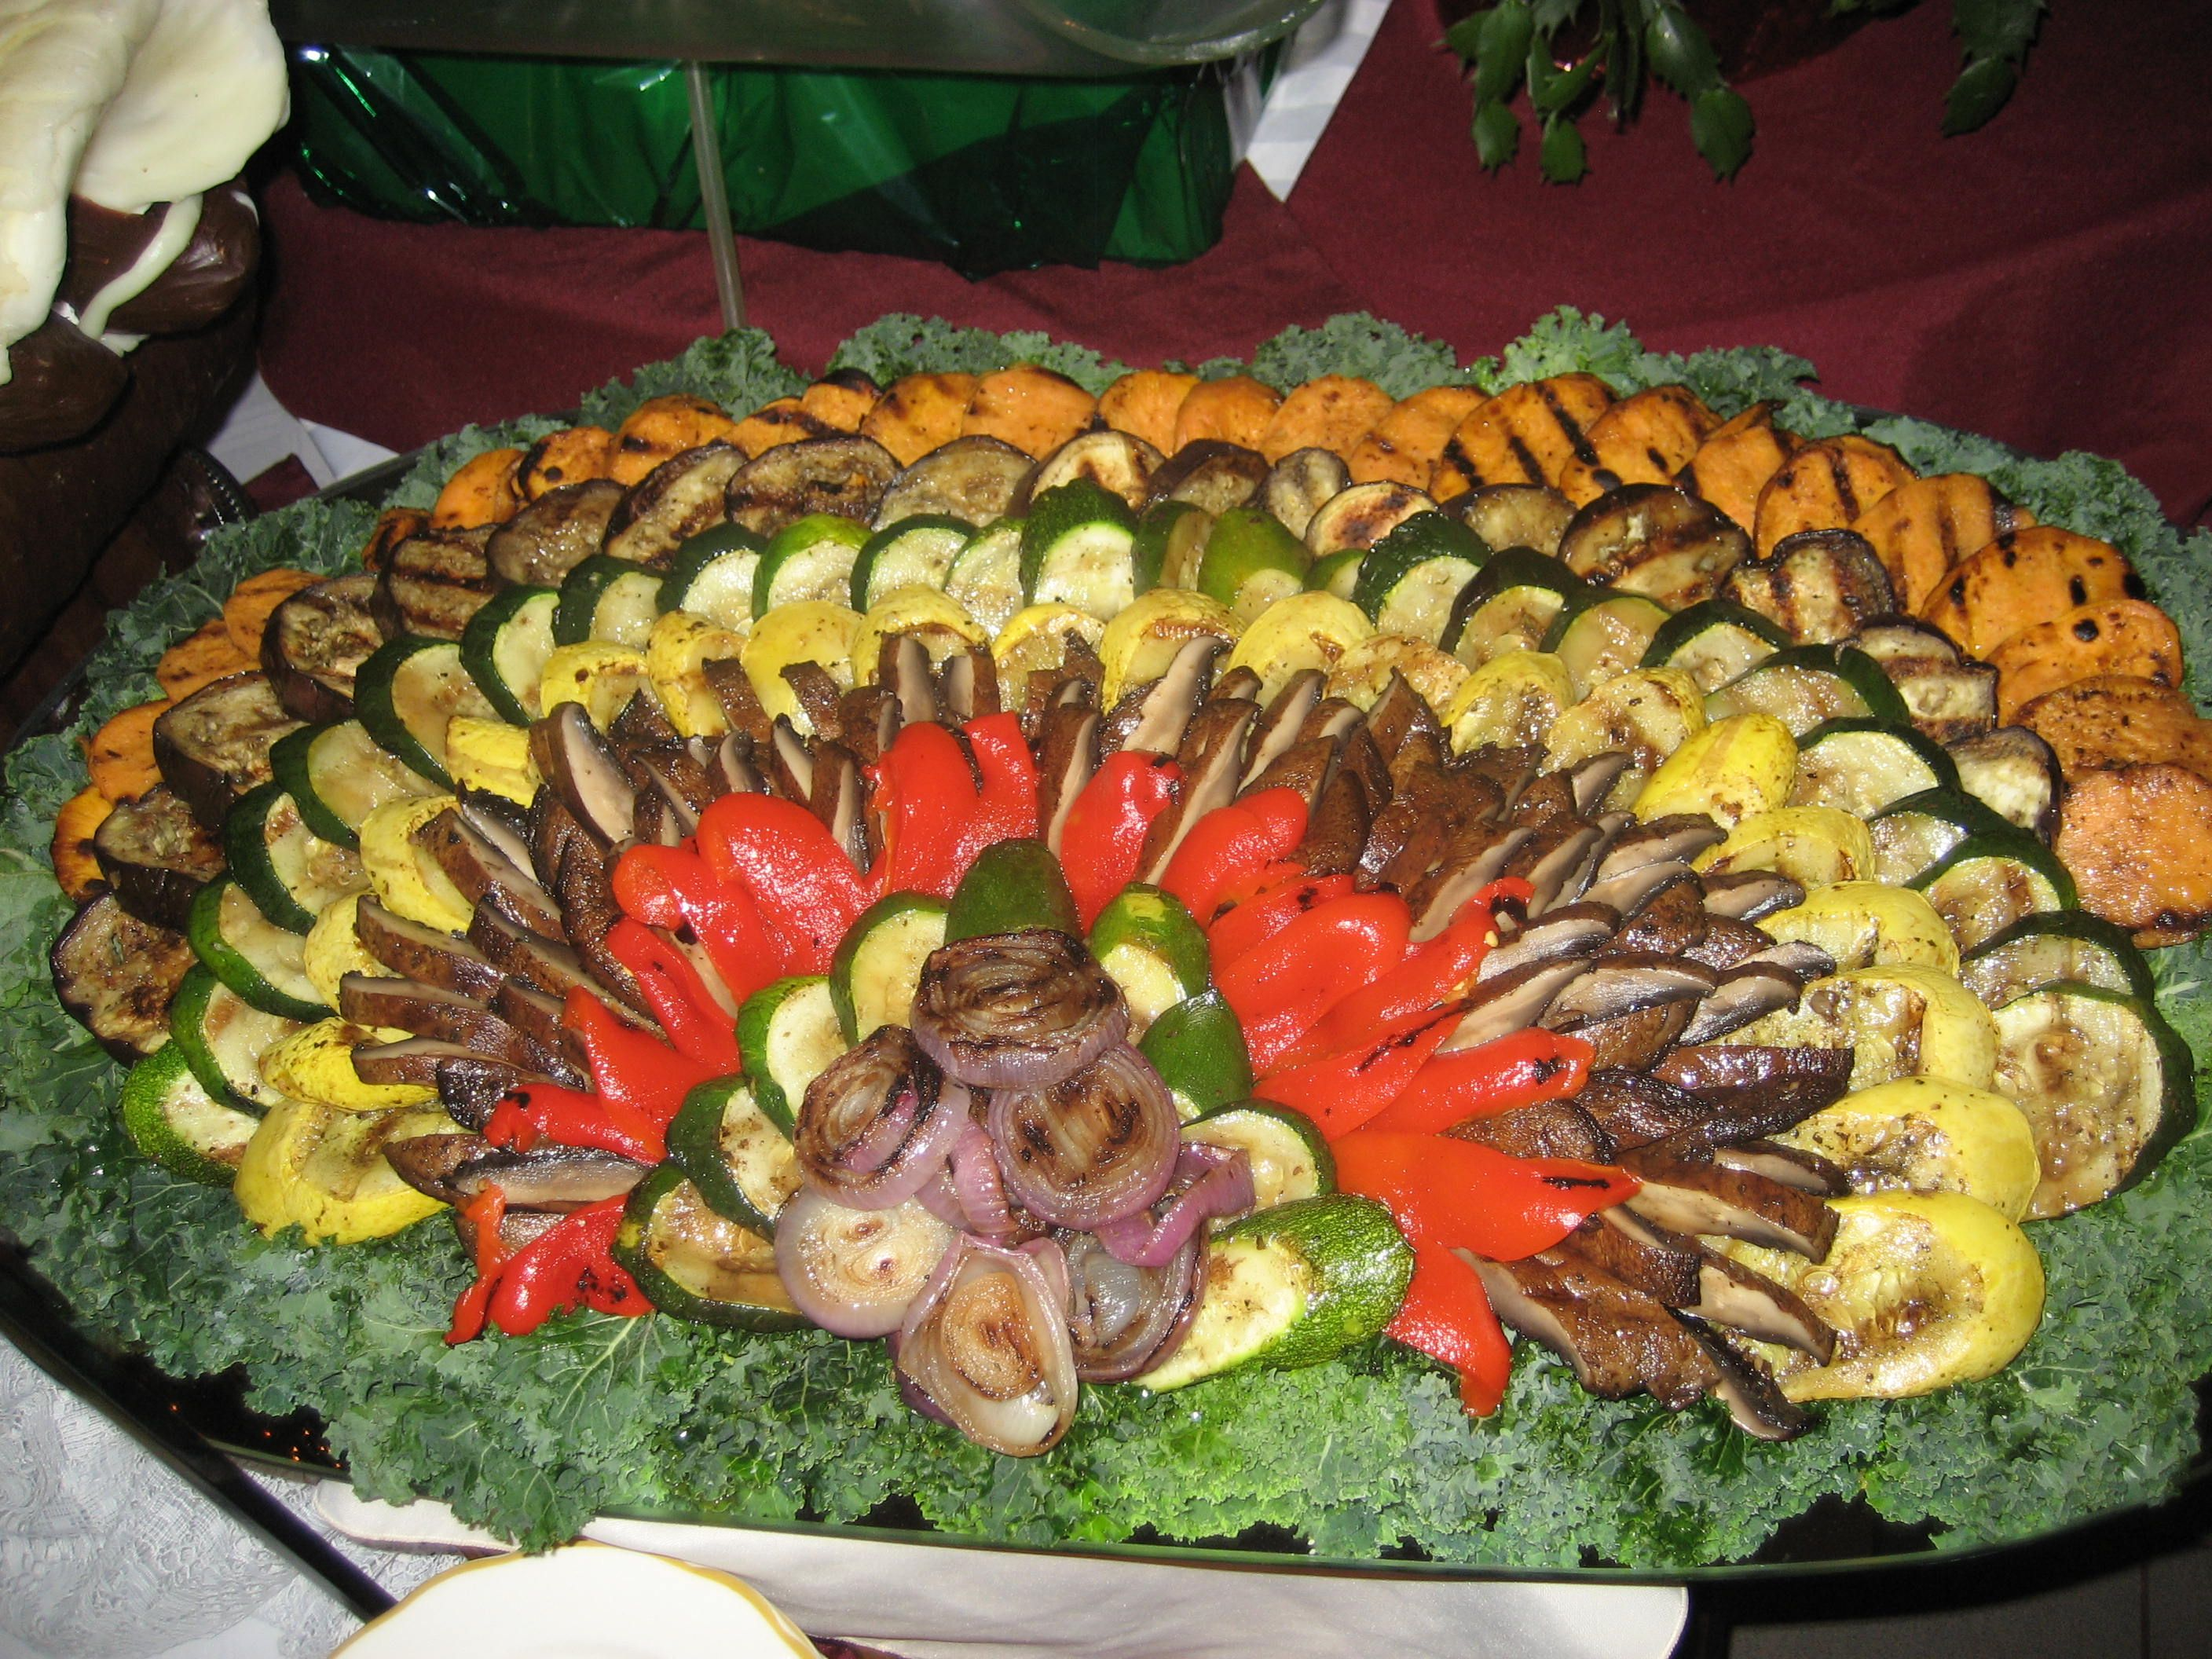 Waterfall Fruit And Veggie Displays: Weddings, Banquet, Catering On